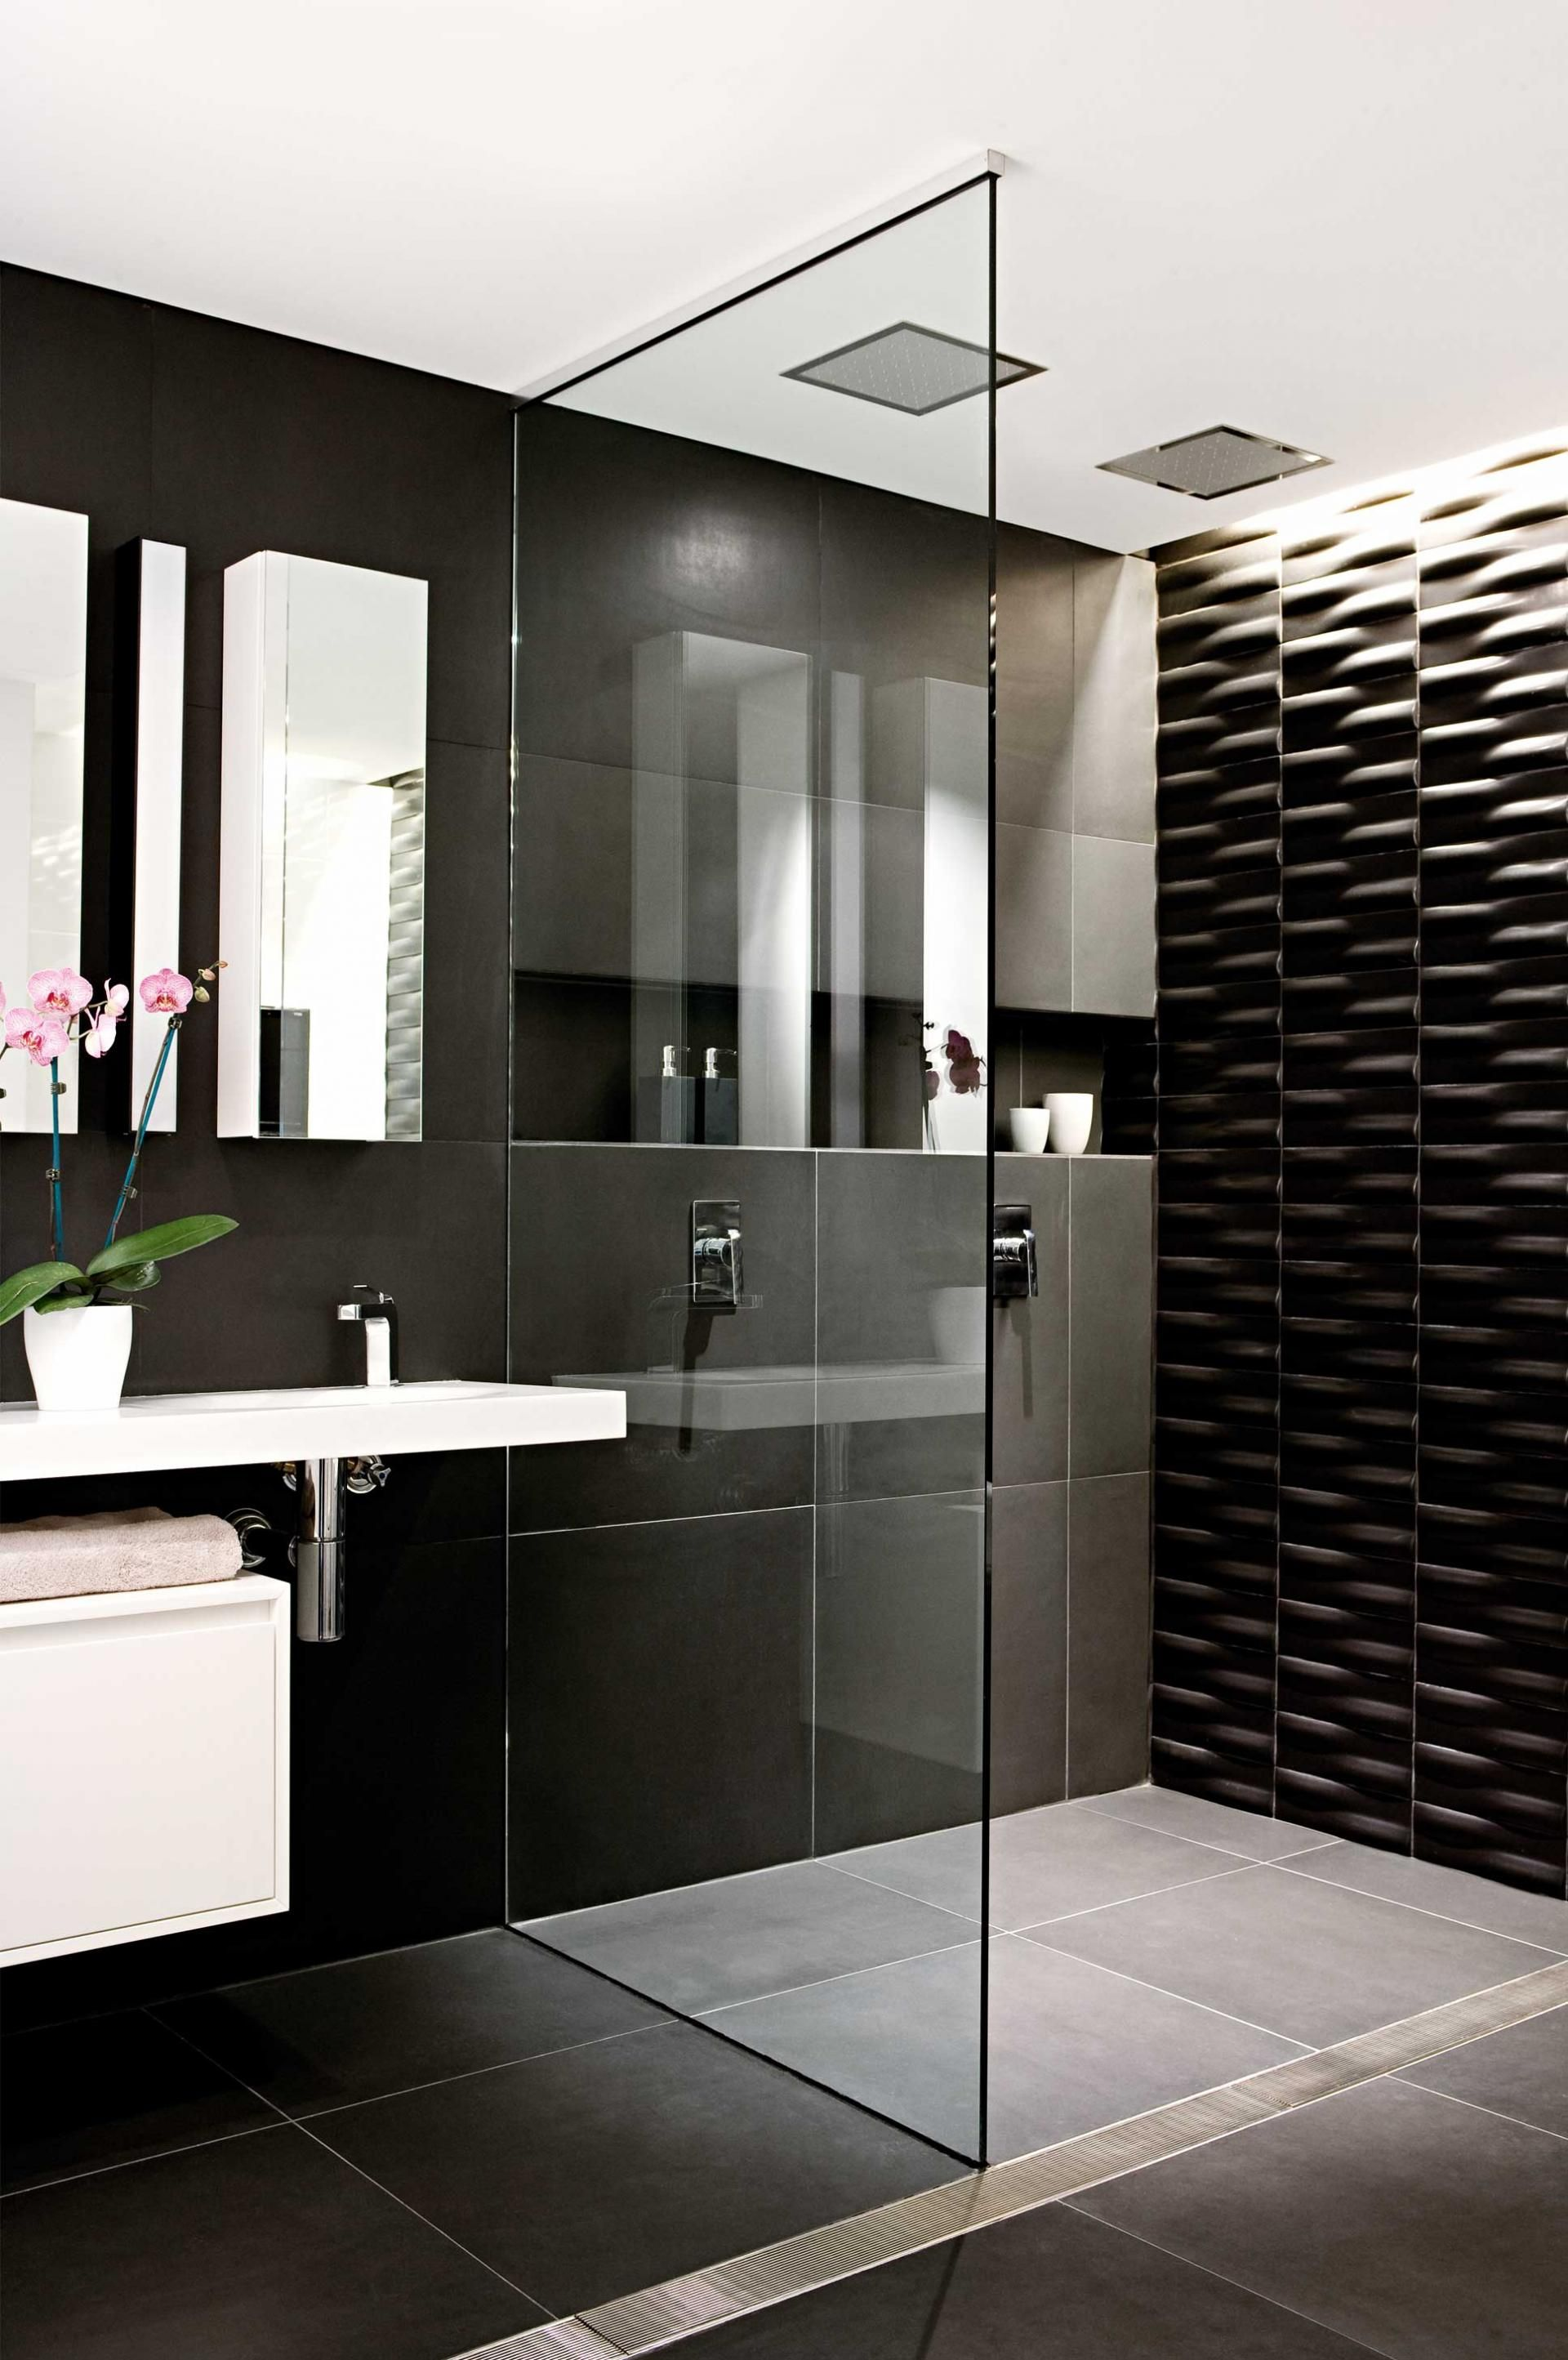 Bathroom Decorating Ideas Black And White 10 black and white bathrooms. stylingvanessa colyer tay